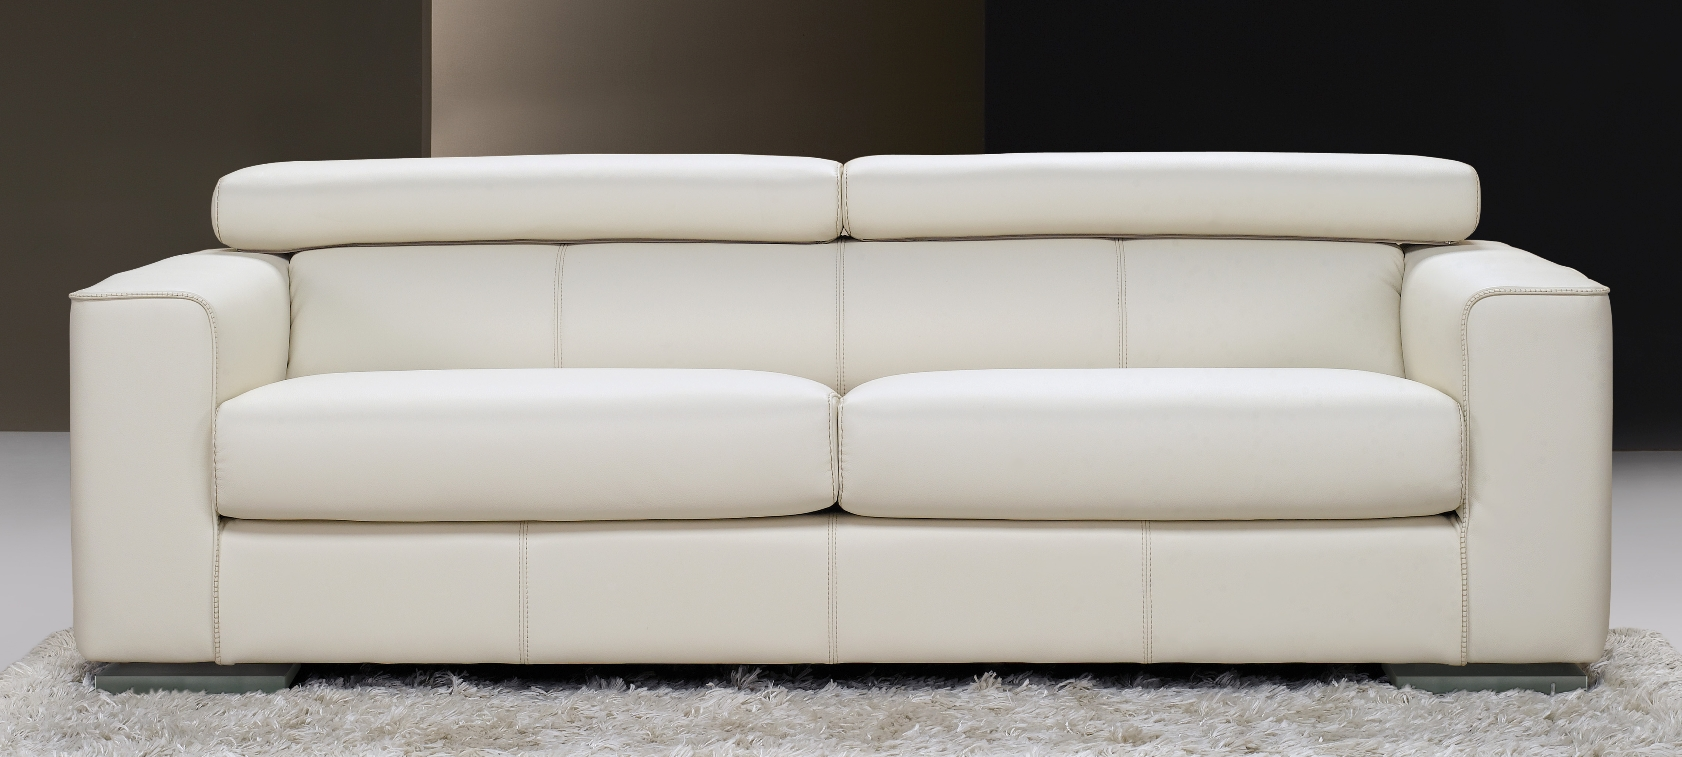 Modern Luxury Leather Sofa Fine Home Furnishings High Quality Furniture To Suit All Home Decor